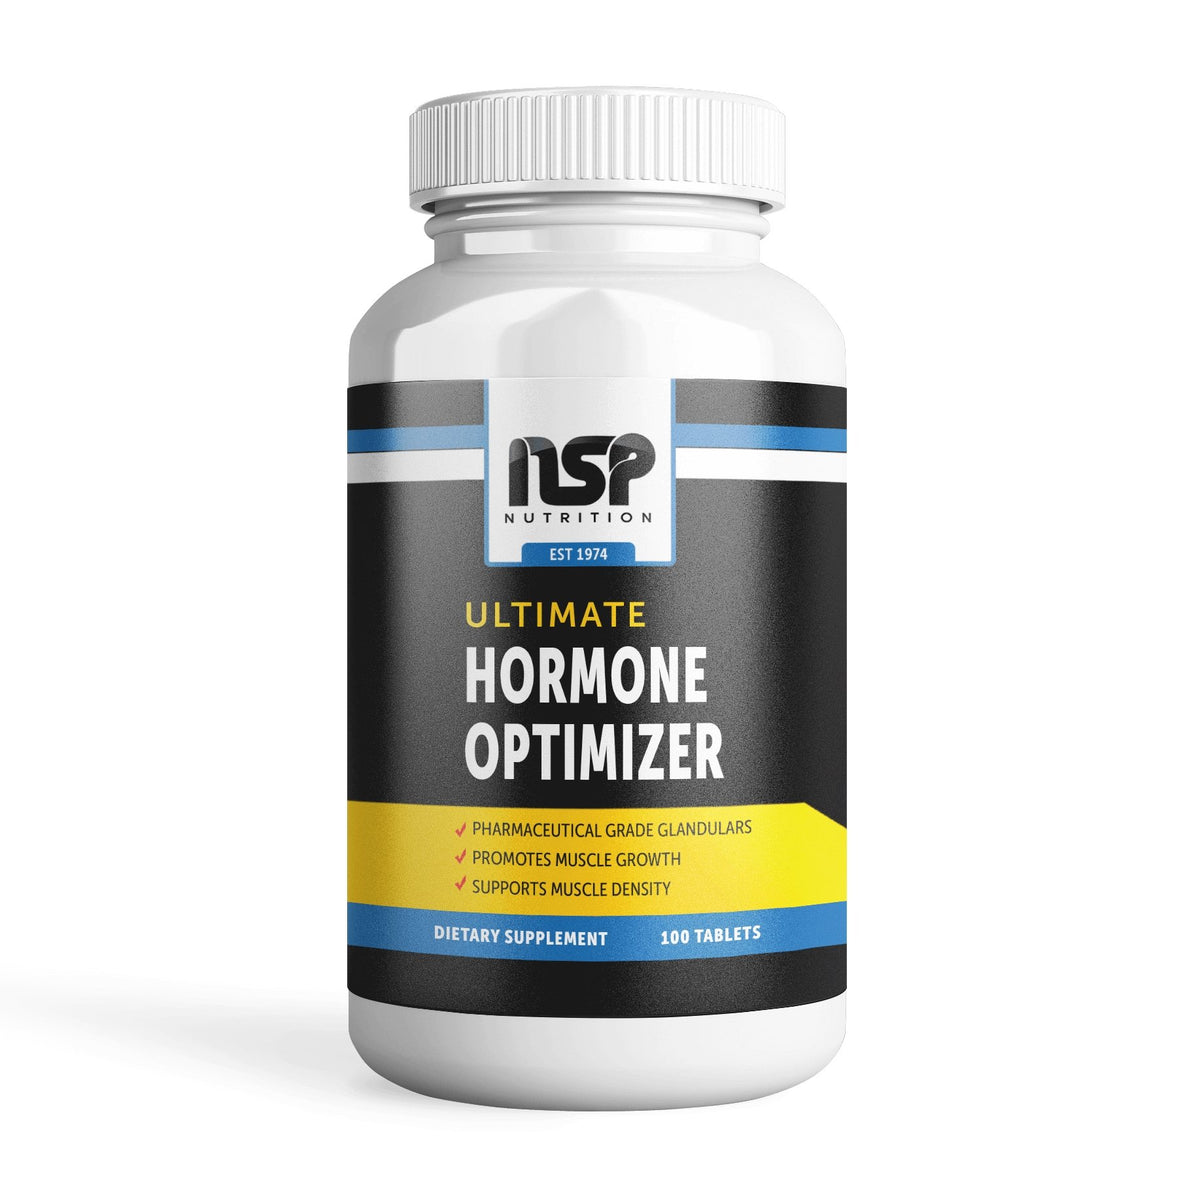 Ultra Hormone Optimizer Glandulars (Sterol 11) - NSP Nutrition